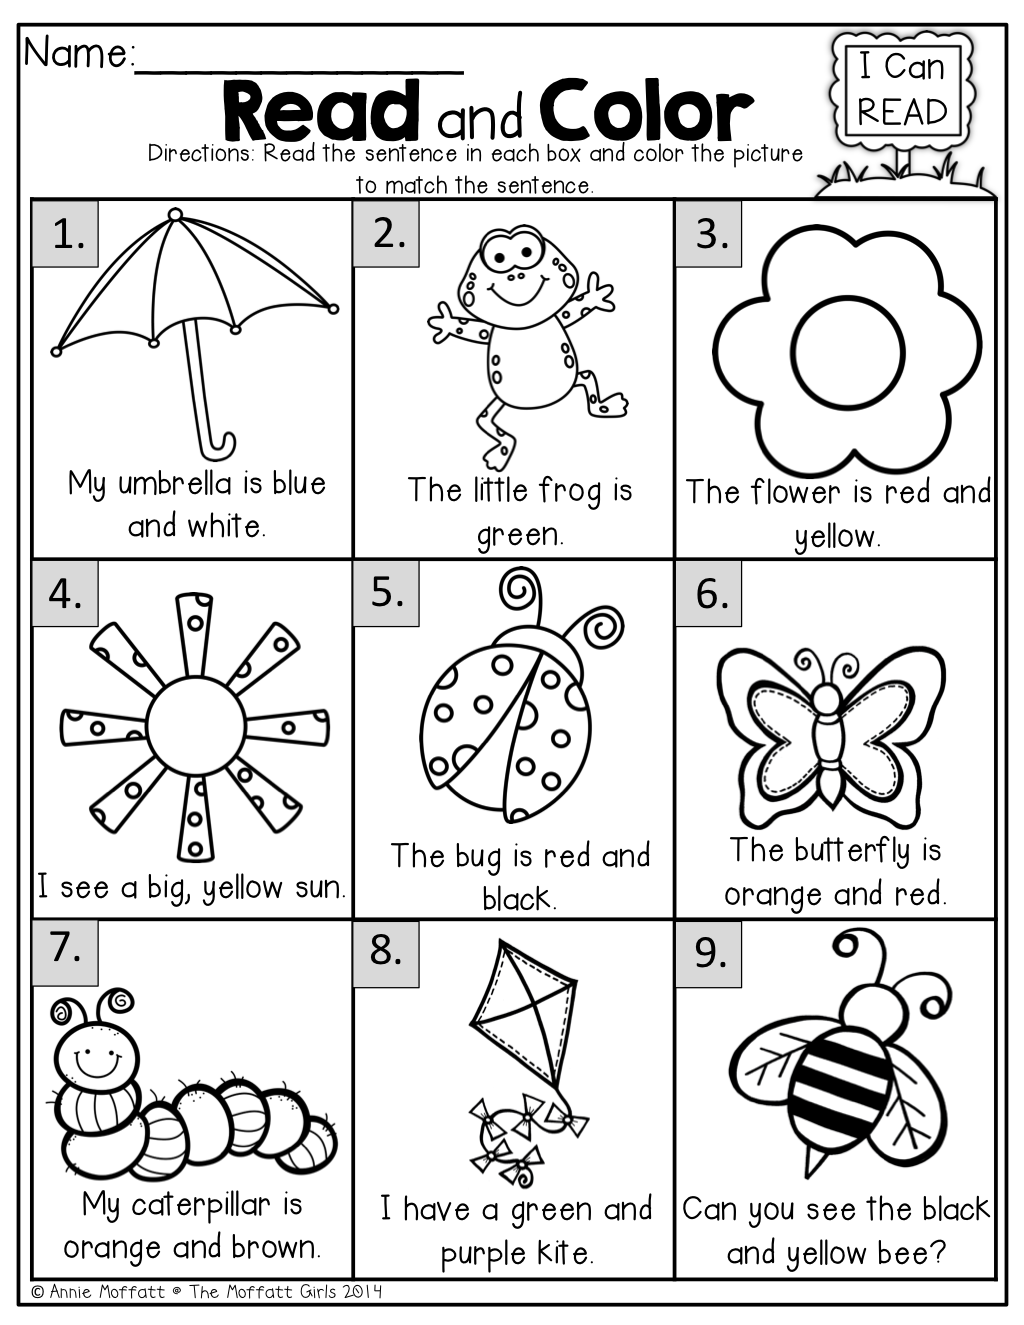 Read And Color Mple Sentences For Early Readers